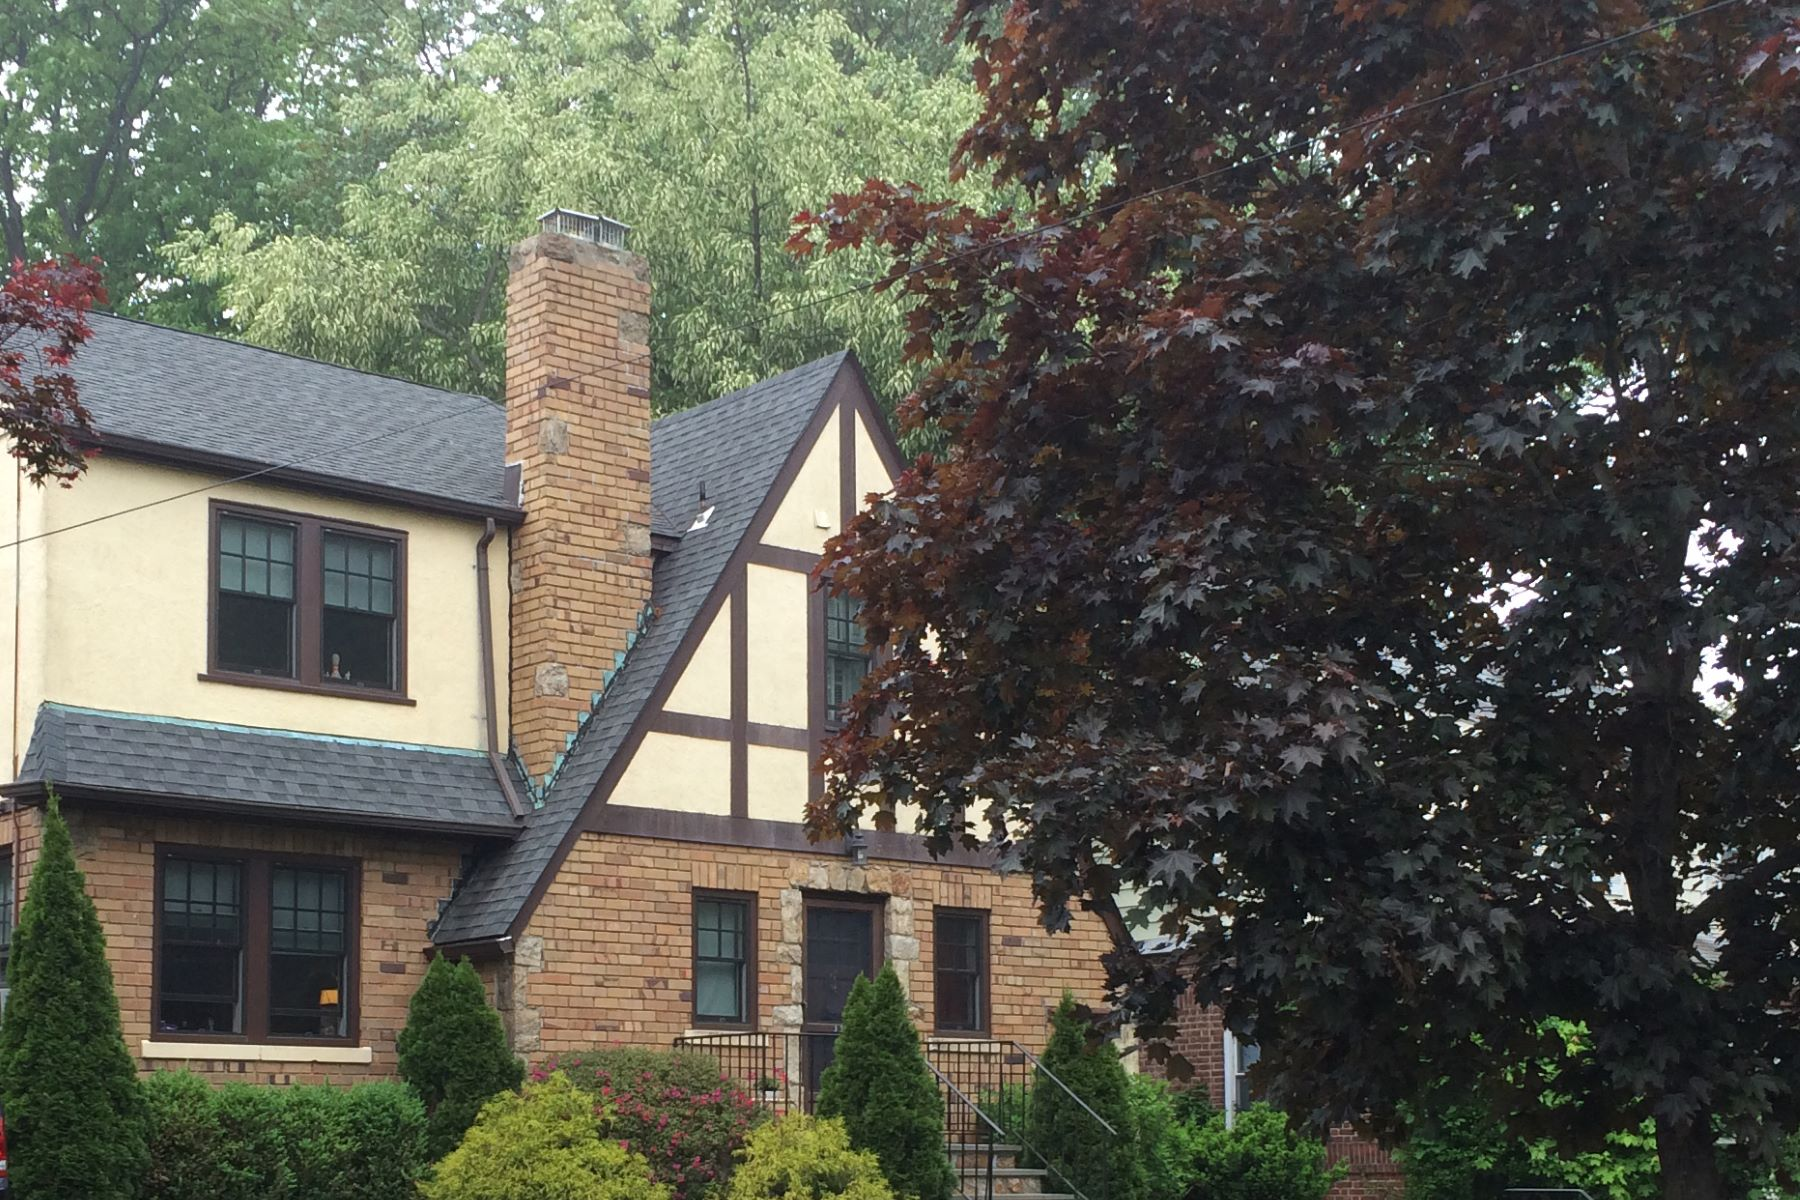 Single Family Home for Sale at 336 Wagner Avenue Mamaroneck, New York, 10543 United States